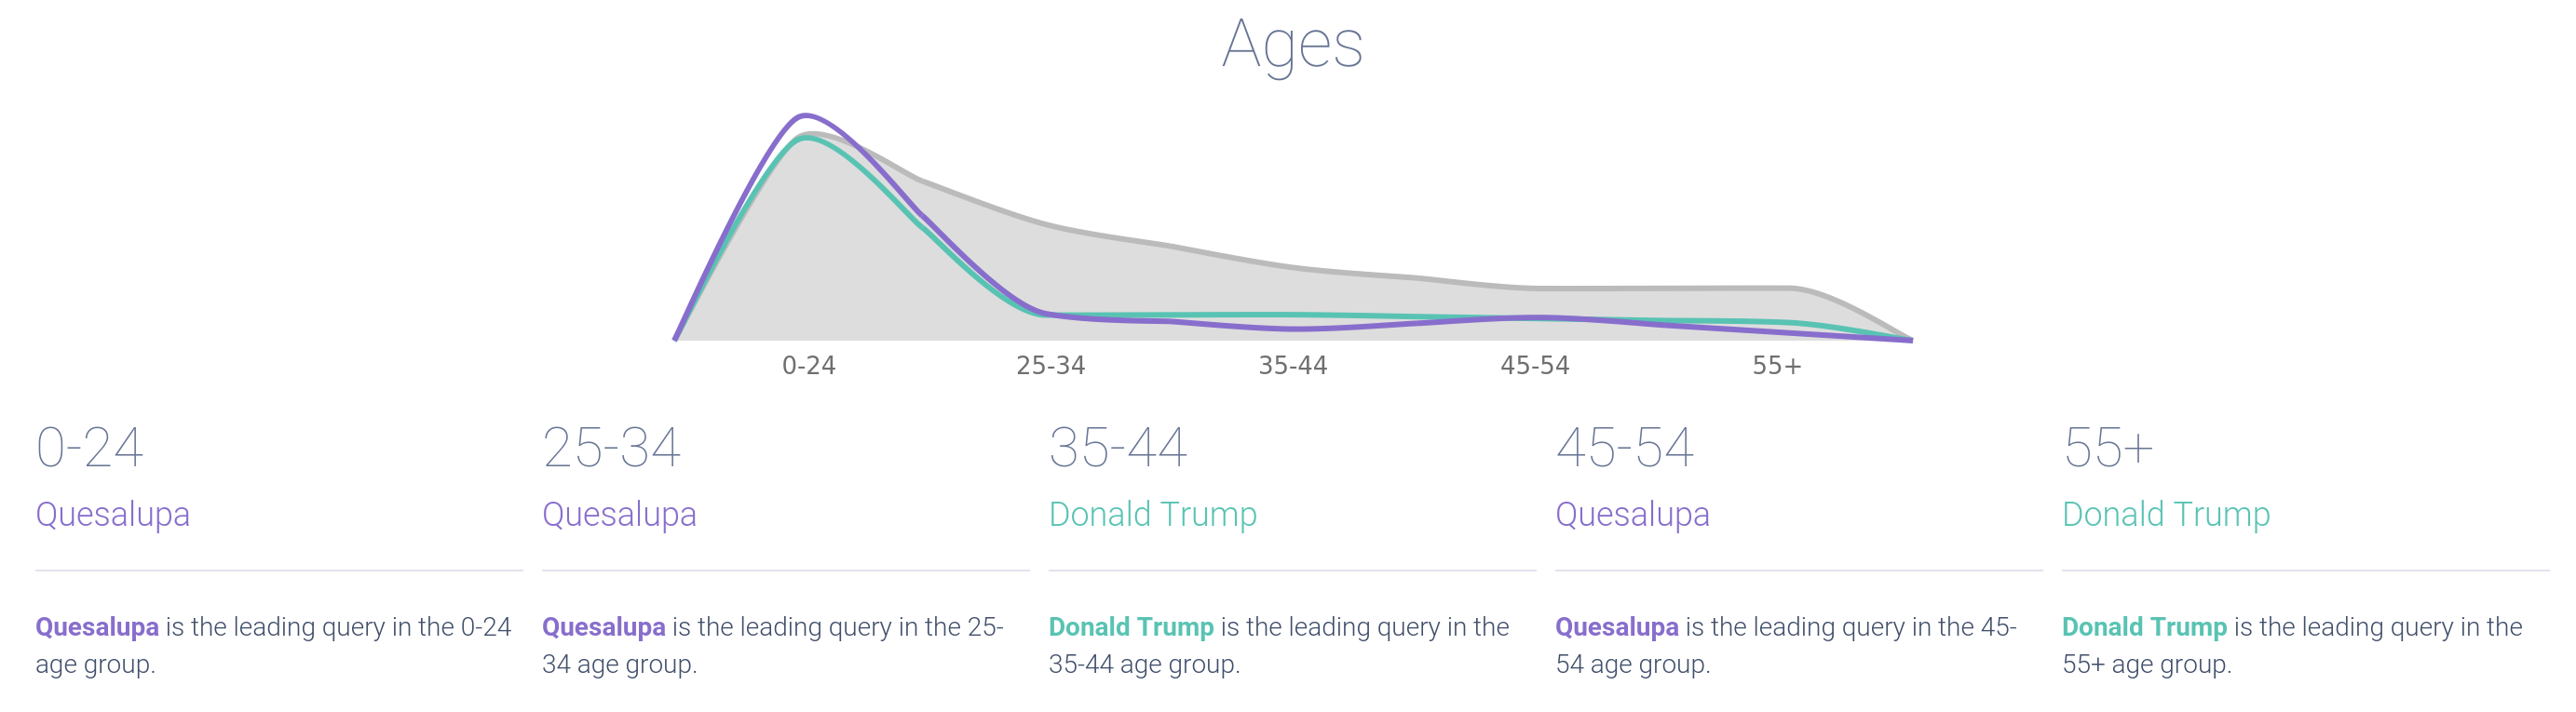 trumpvtaco_combined_ages-018182-edited.png